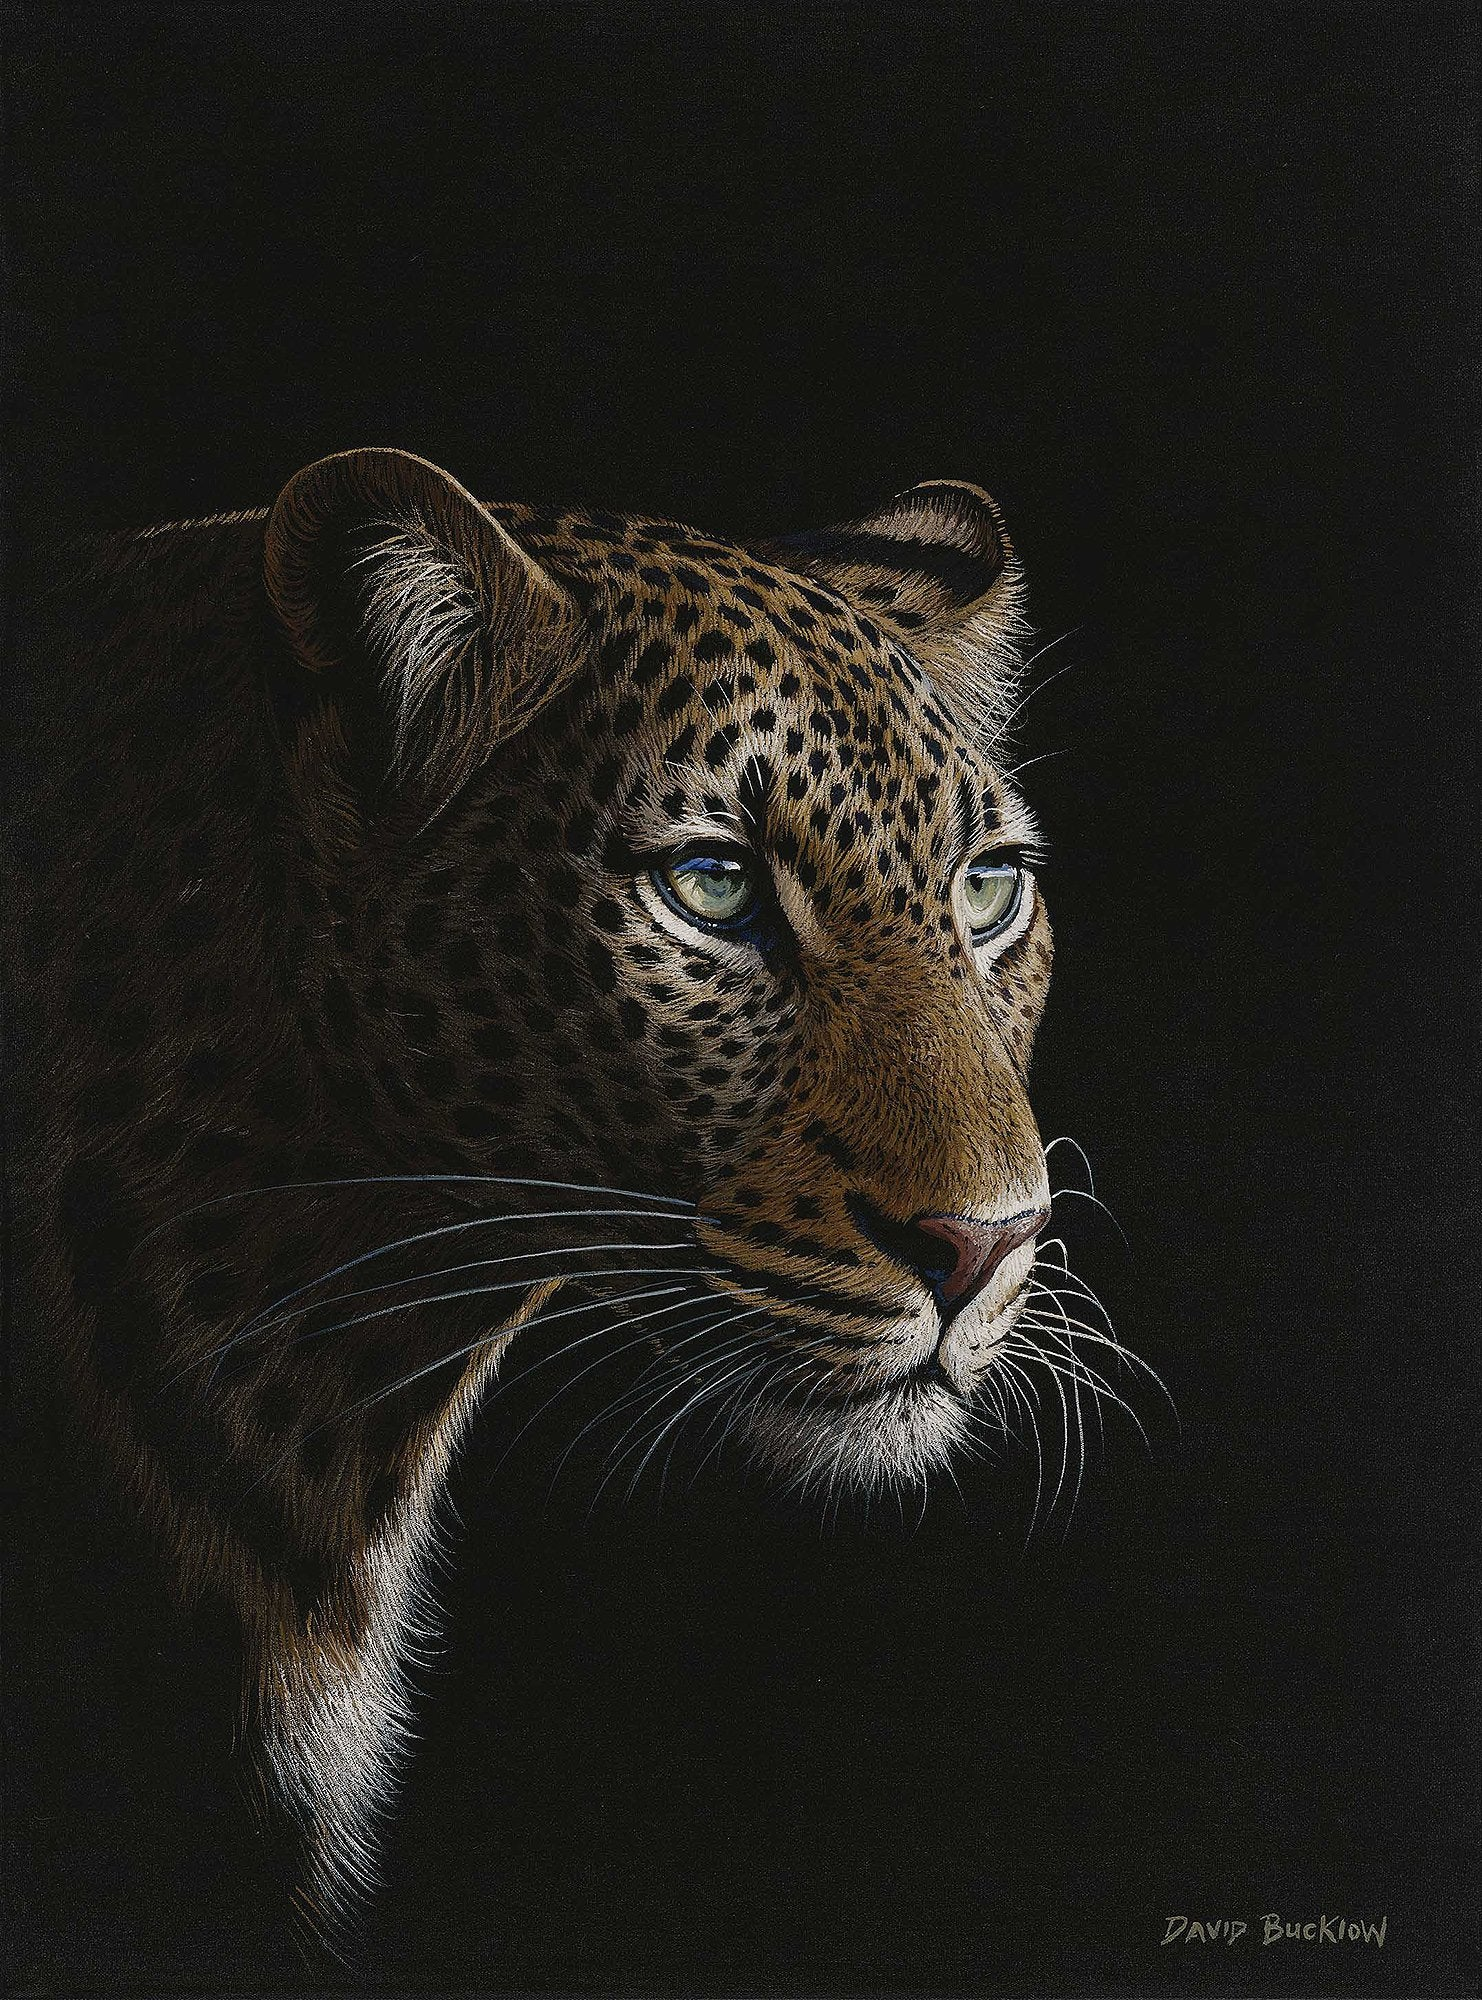 Leopard painting fine art print of a leopard at night entitled Patiently Waiting by David Bucklow artist